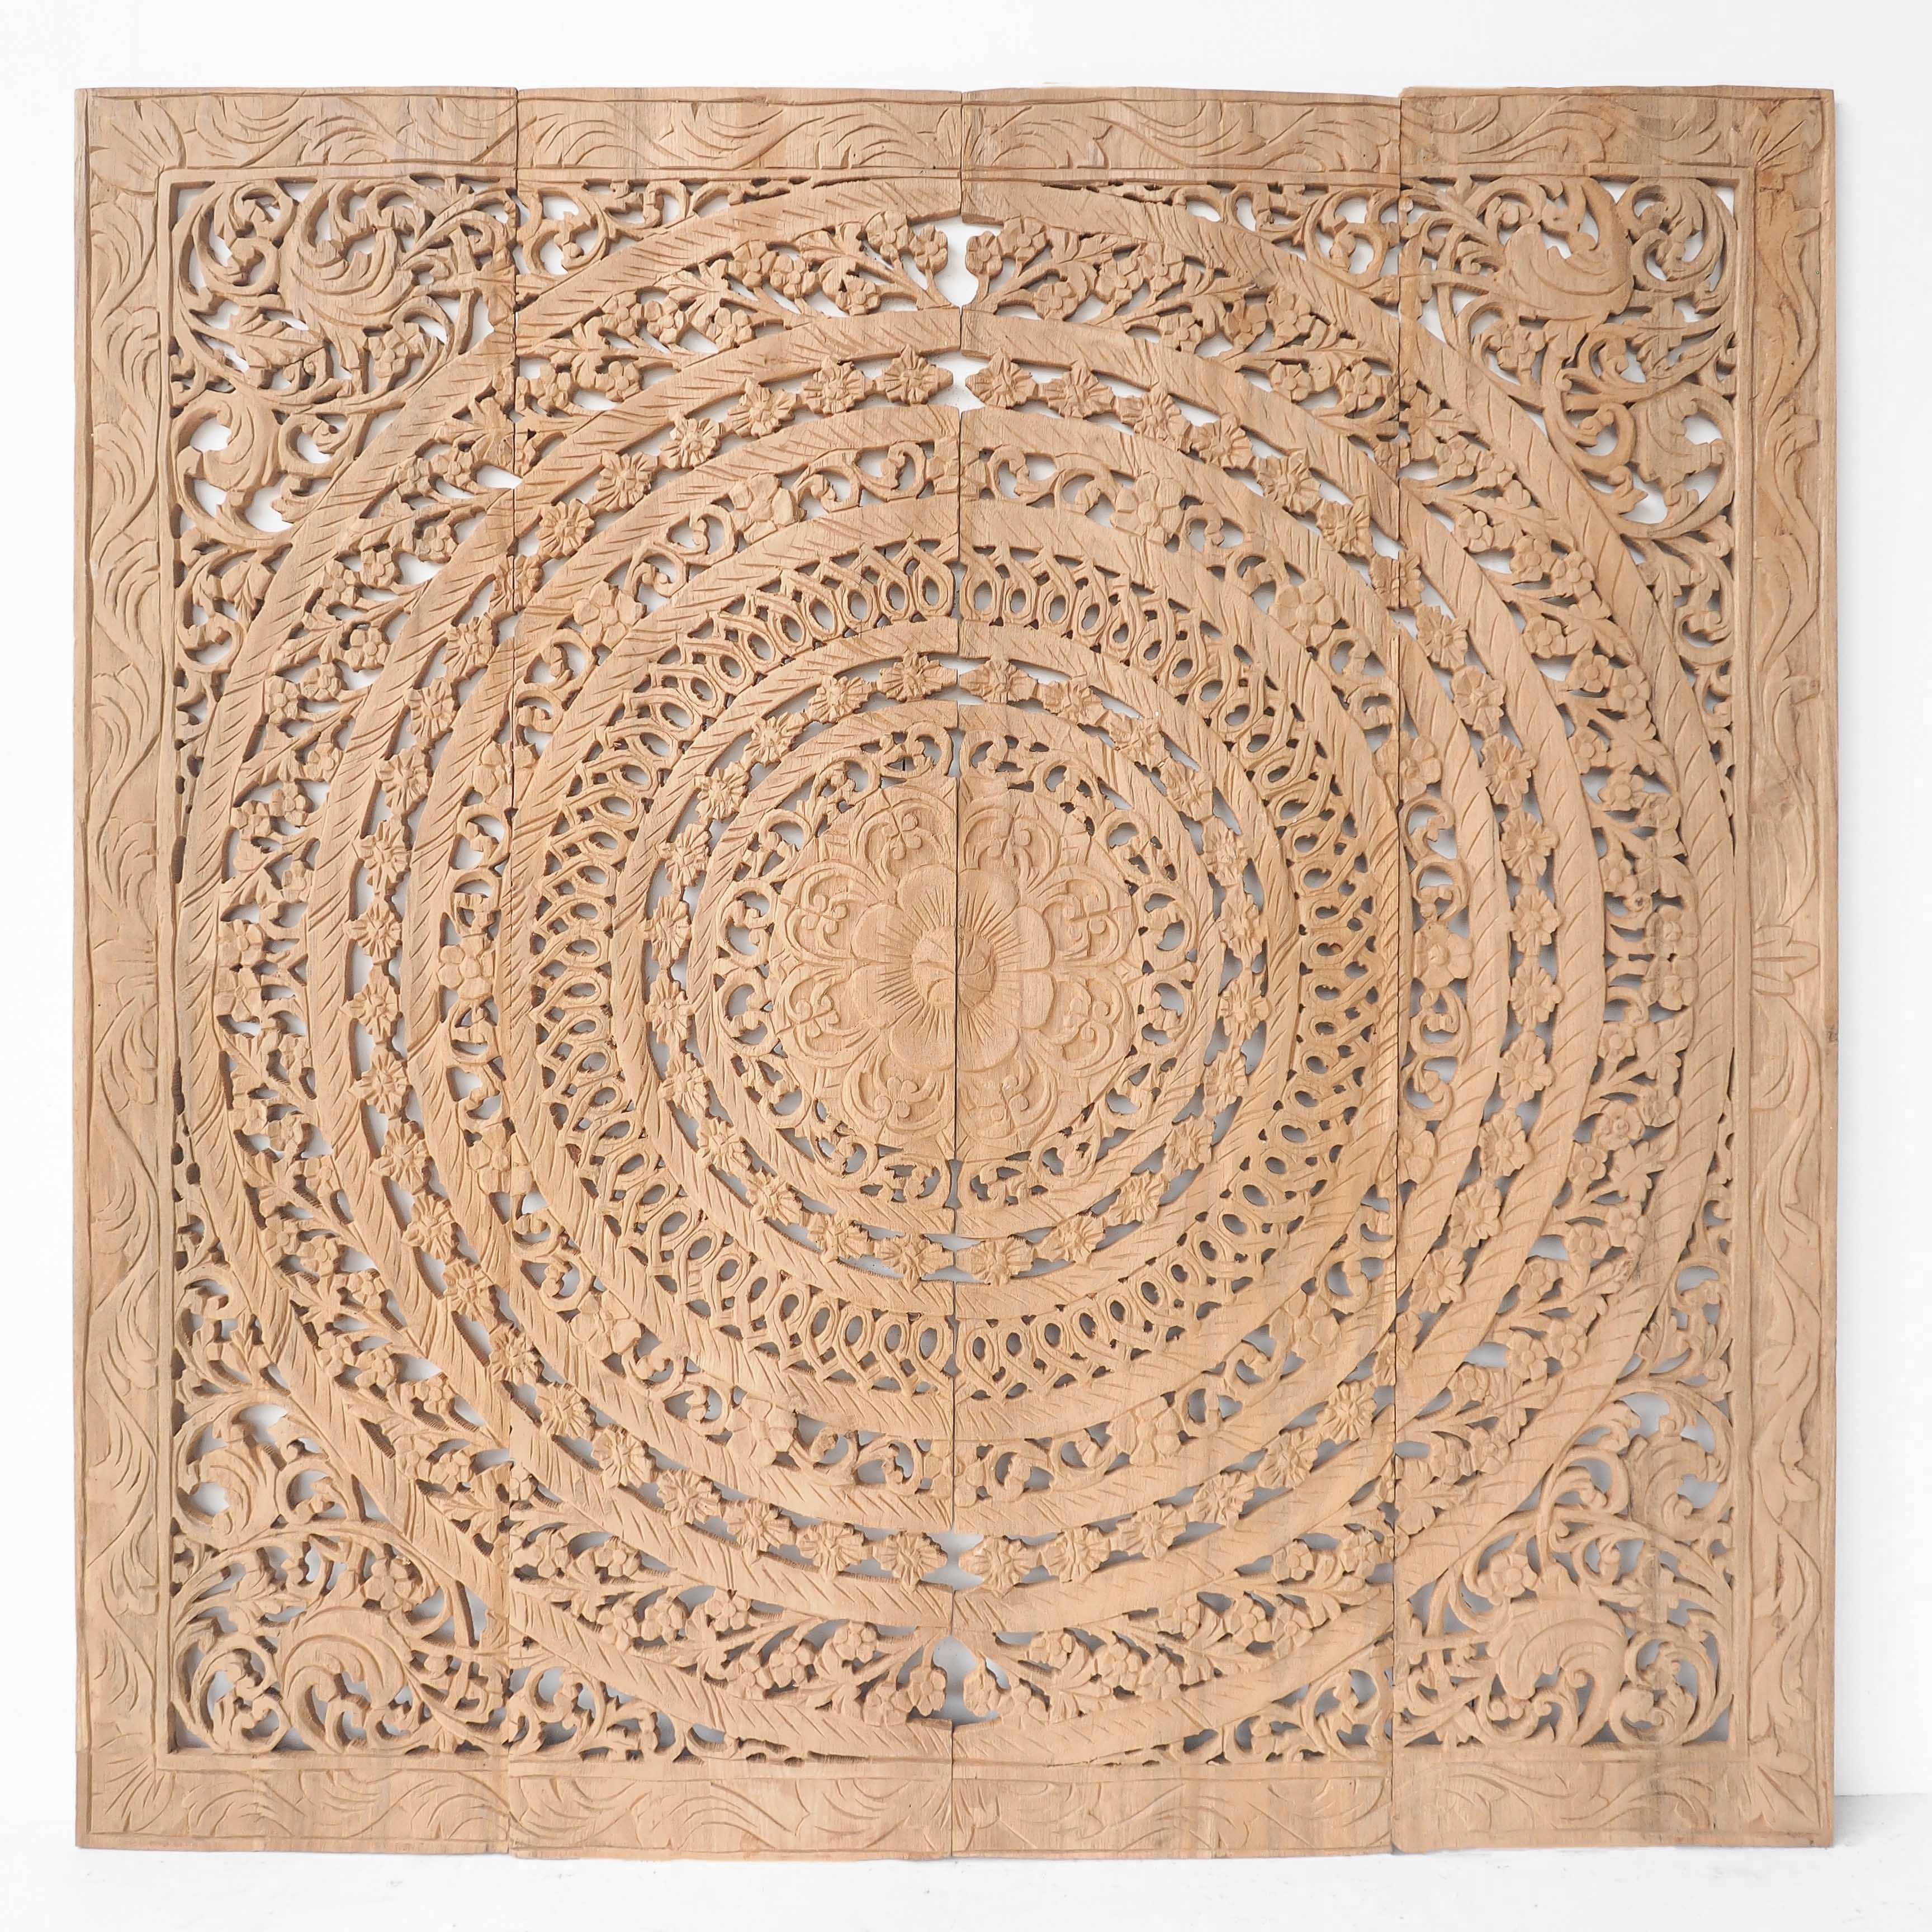 Newest Buy Wood Carving Wall Panel With Moroccan Design Online Inside Wood Carved Wall Art (View 3 of 15)